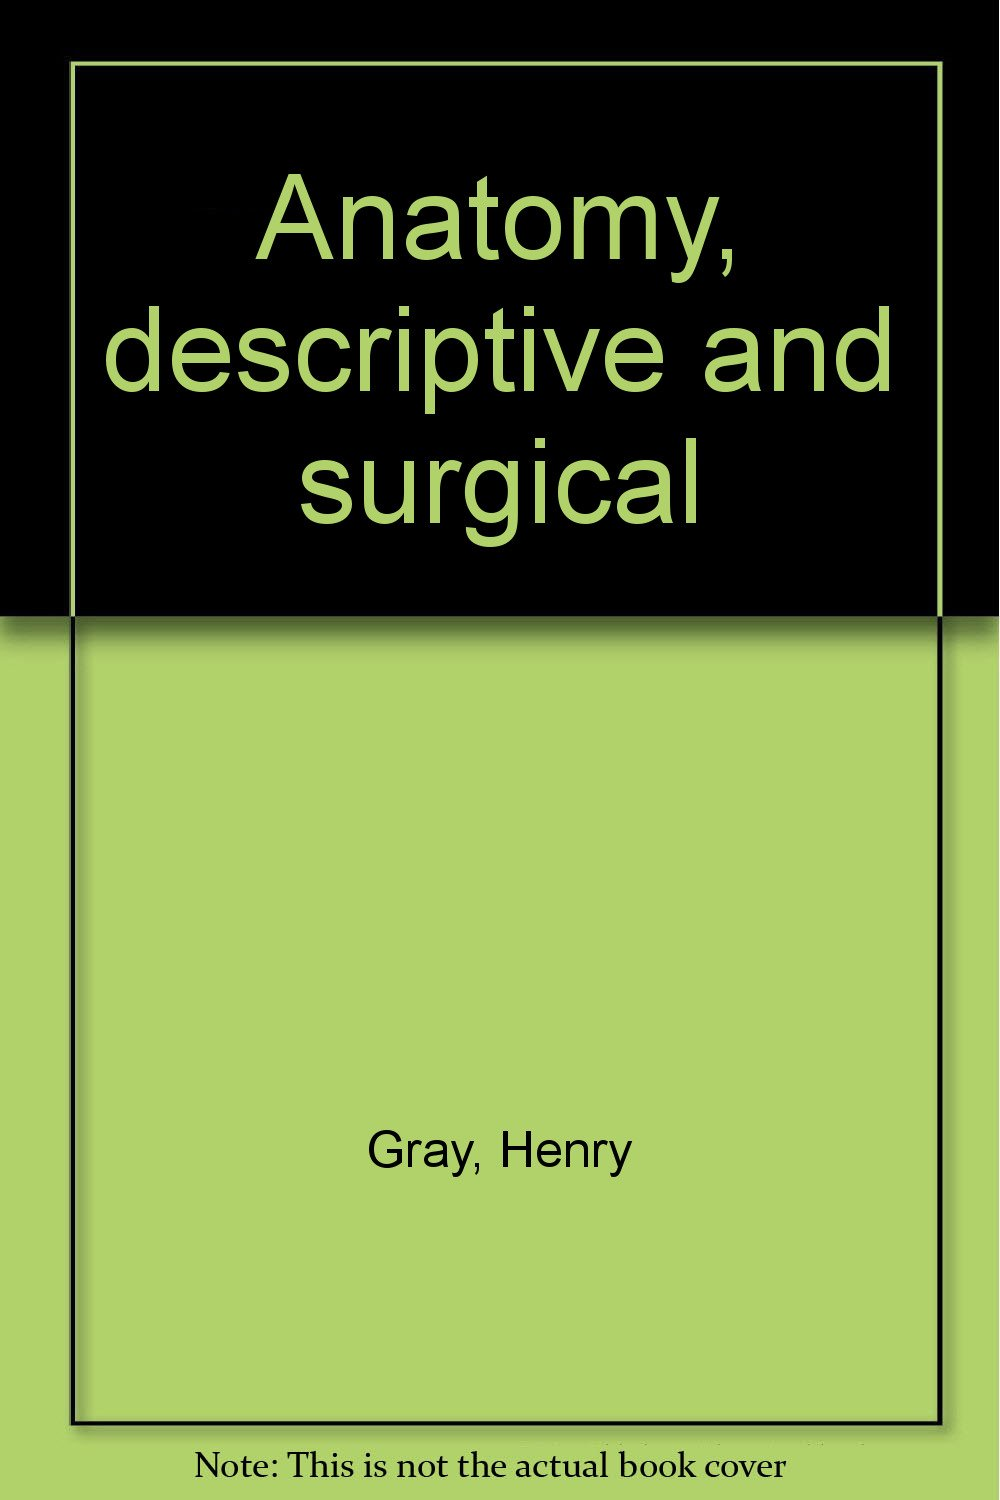 Anatomy, descriptive and surgical: Amazon.co.uk: Henry Gray: Books